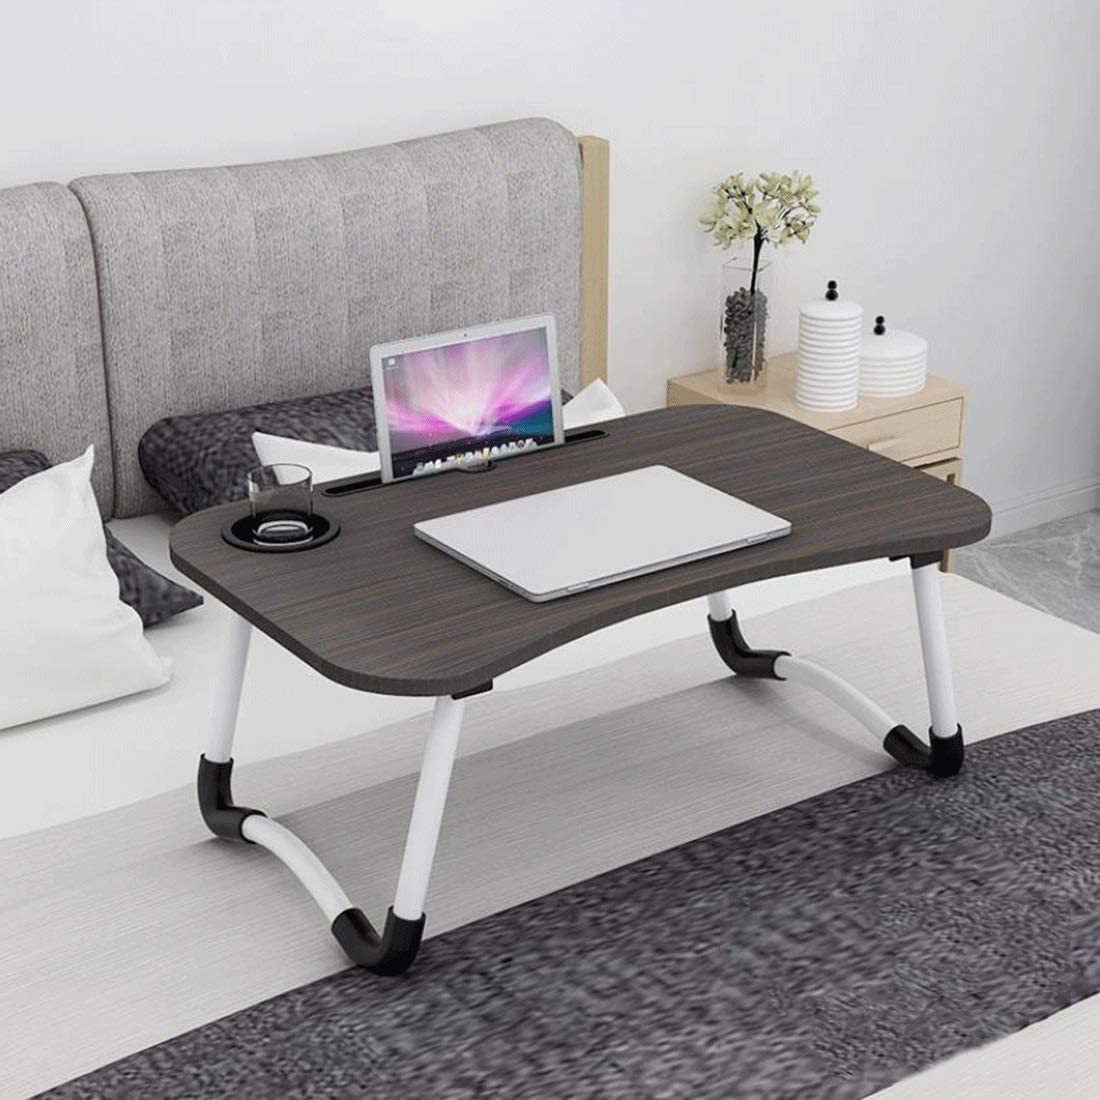 Sale Special Price JYQ-SZRQ Laptop Outlet SALE Table Lap Standing Desk Bed and Sofa Breakfa for